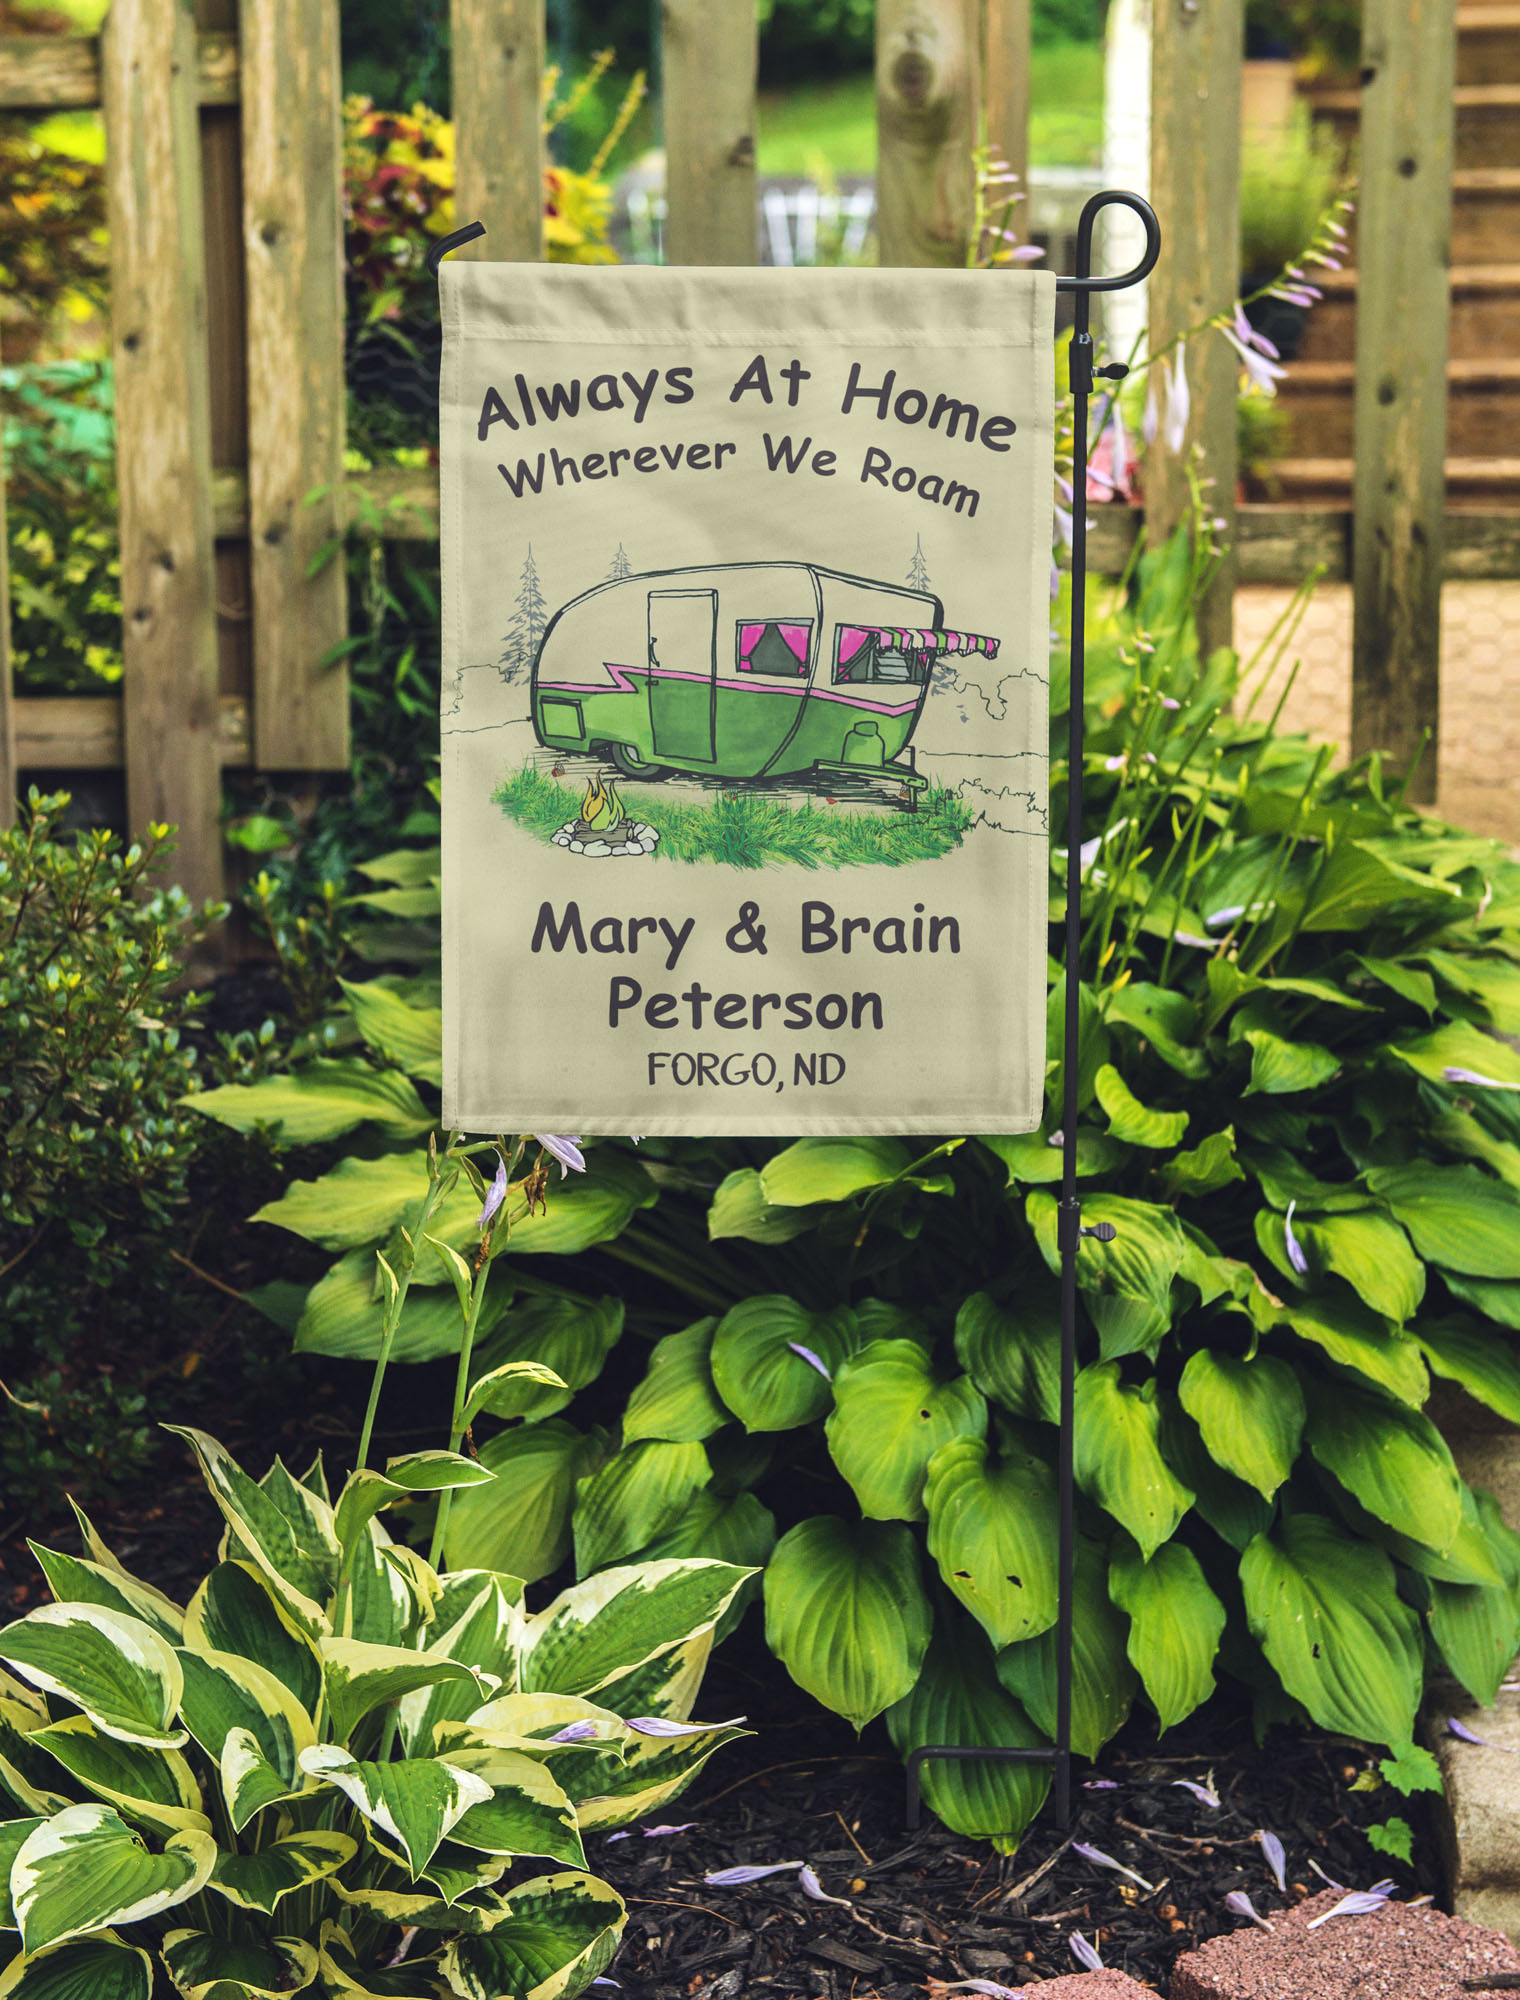 Details About Printtoo Flags Personalized Outdoor Garden Flags Camp Decor Accessory Rct Prcm3b